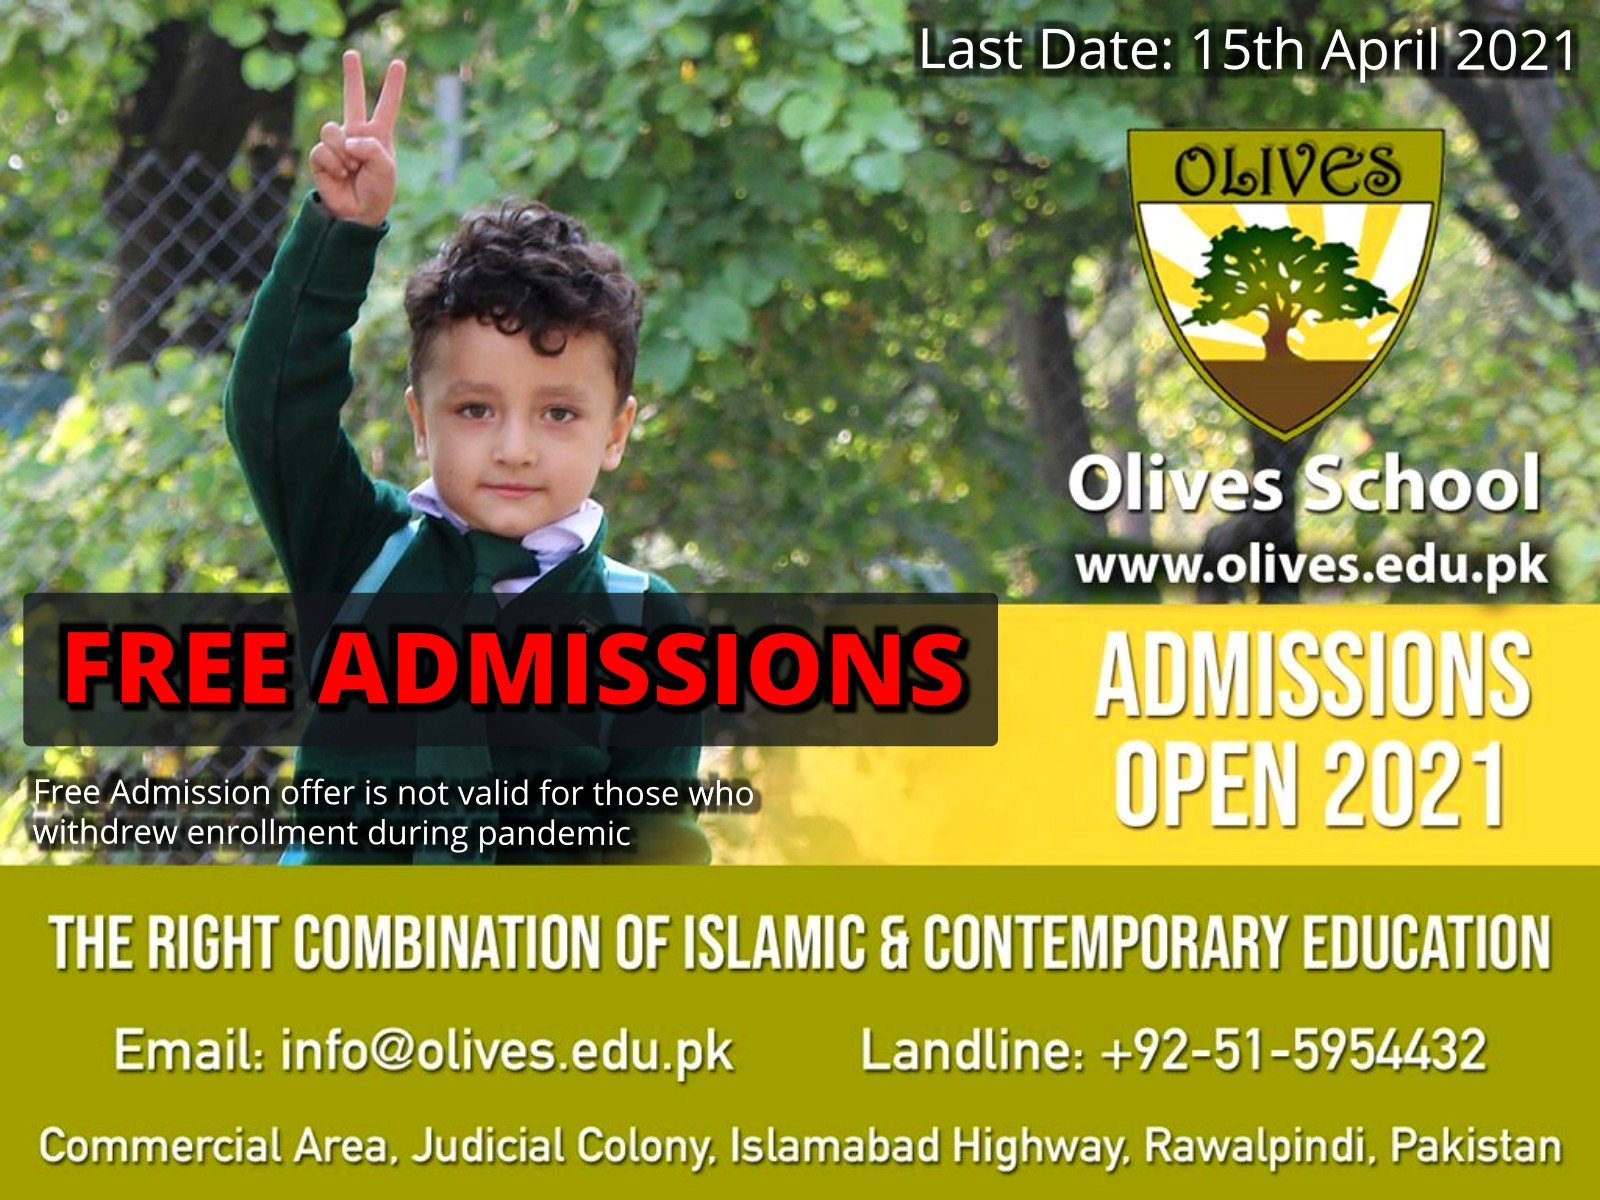 Olives School Admissions 2021